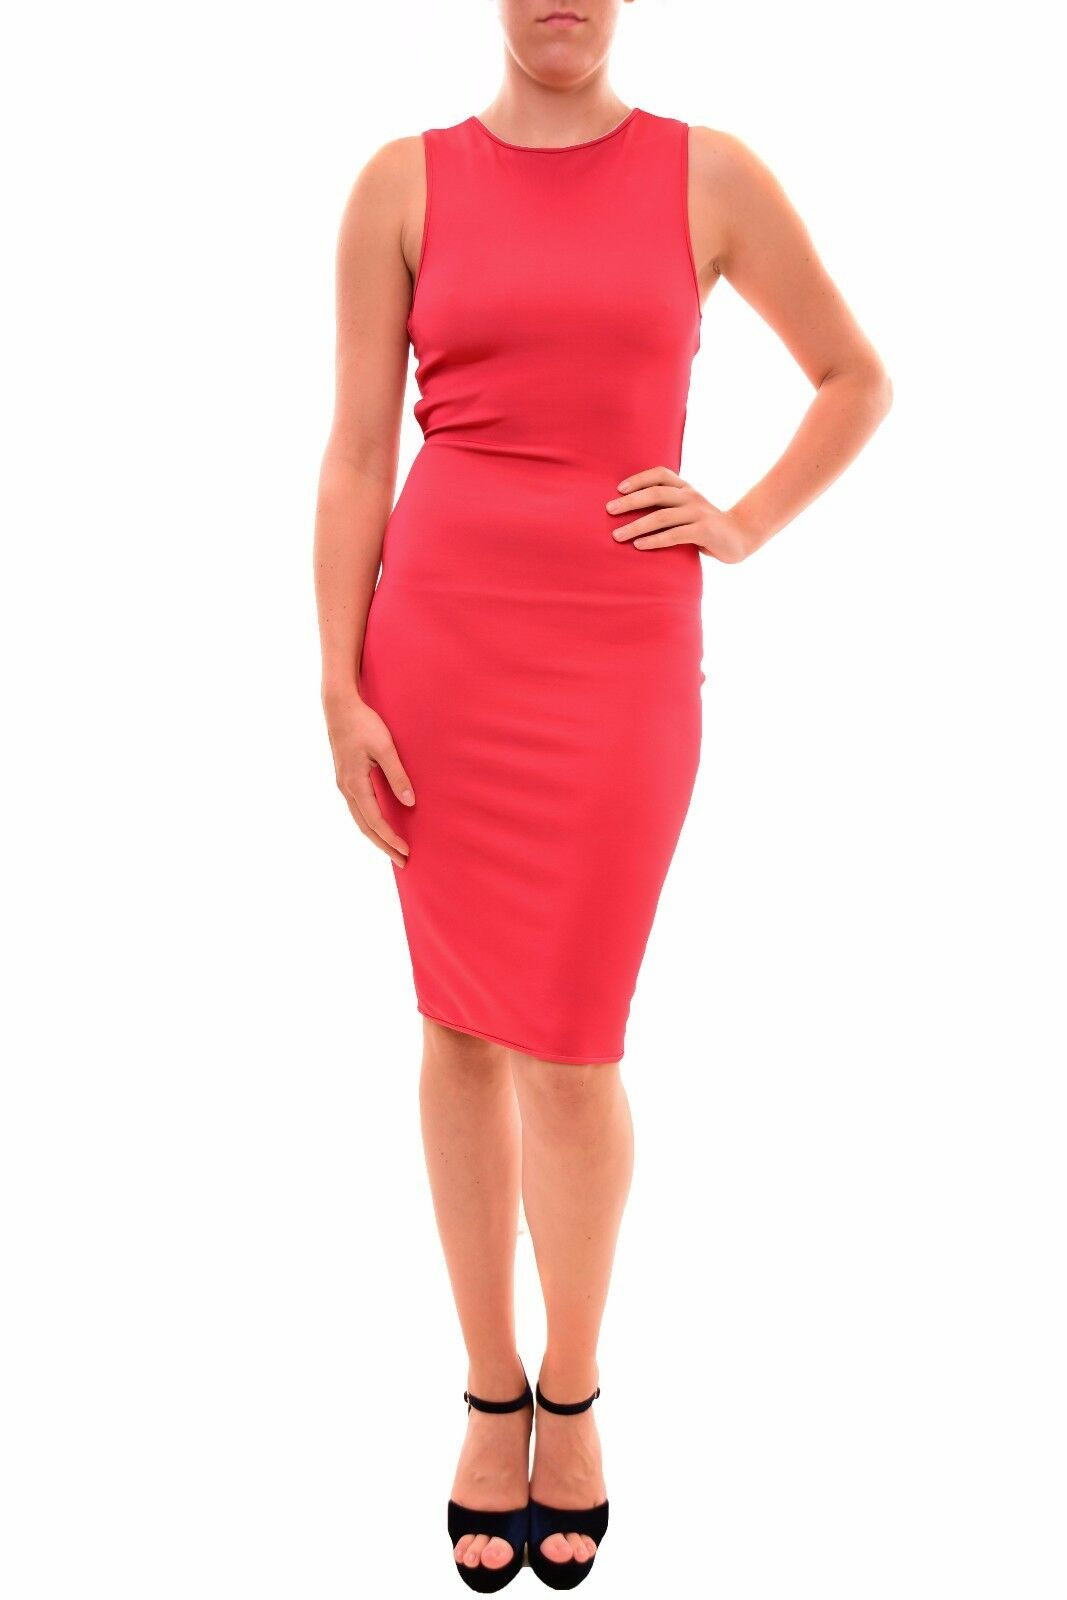 Finders Keepers Cute Stylish Bodycon Frankie Dress Crimson S RRP  BCF710